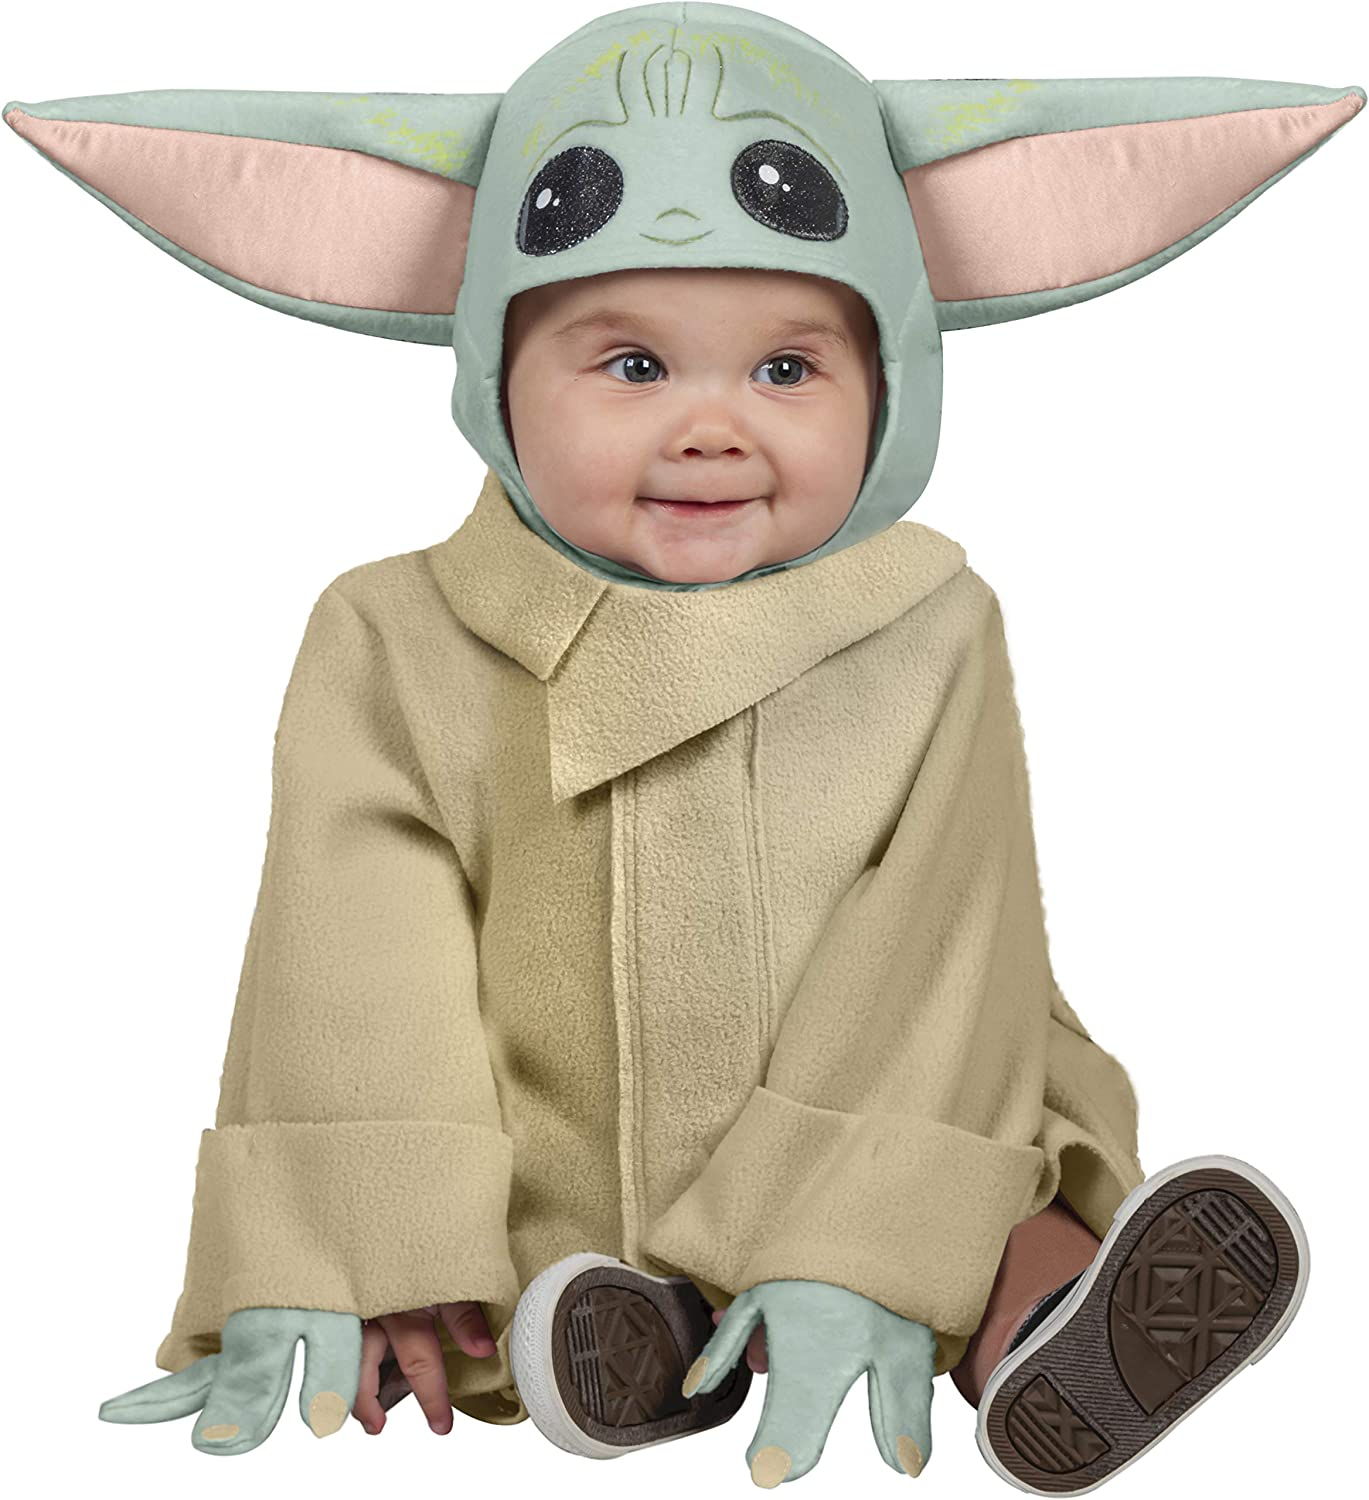 Rubie's Baby Star Wars The Child Weekly update Mandalorian Ranking integrated 1st place Costume